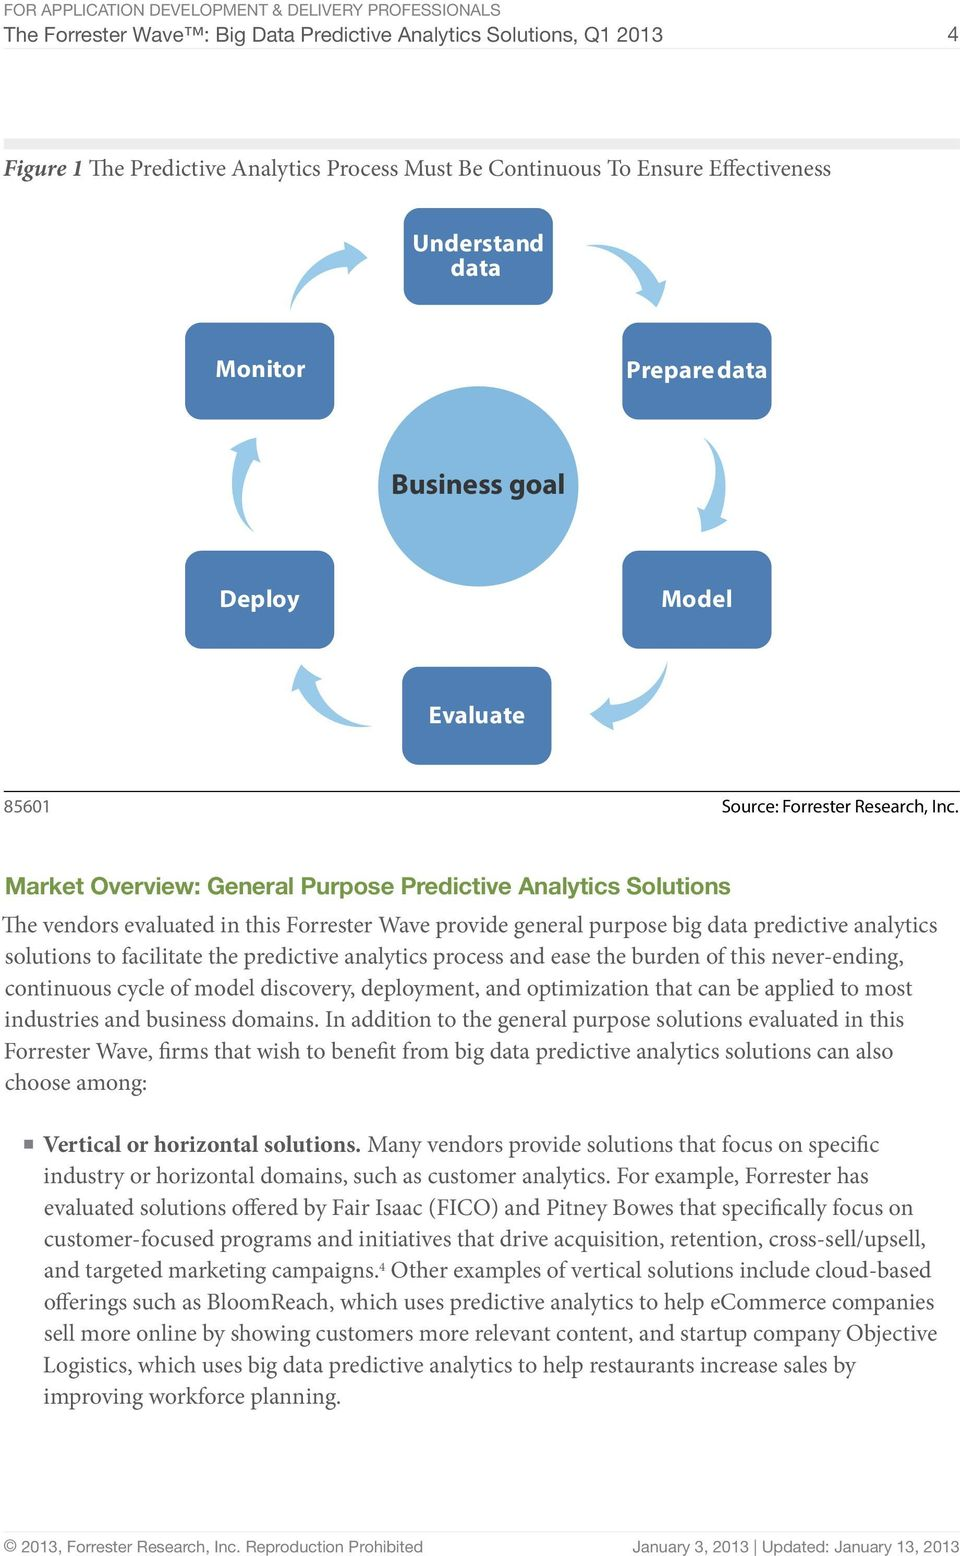 Market Overview: General Purpose Predictive Analytics Solutions The vendors evaluated in this Forrester Wave provide general purpose big data predictive analytics solutions to facilitate the